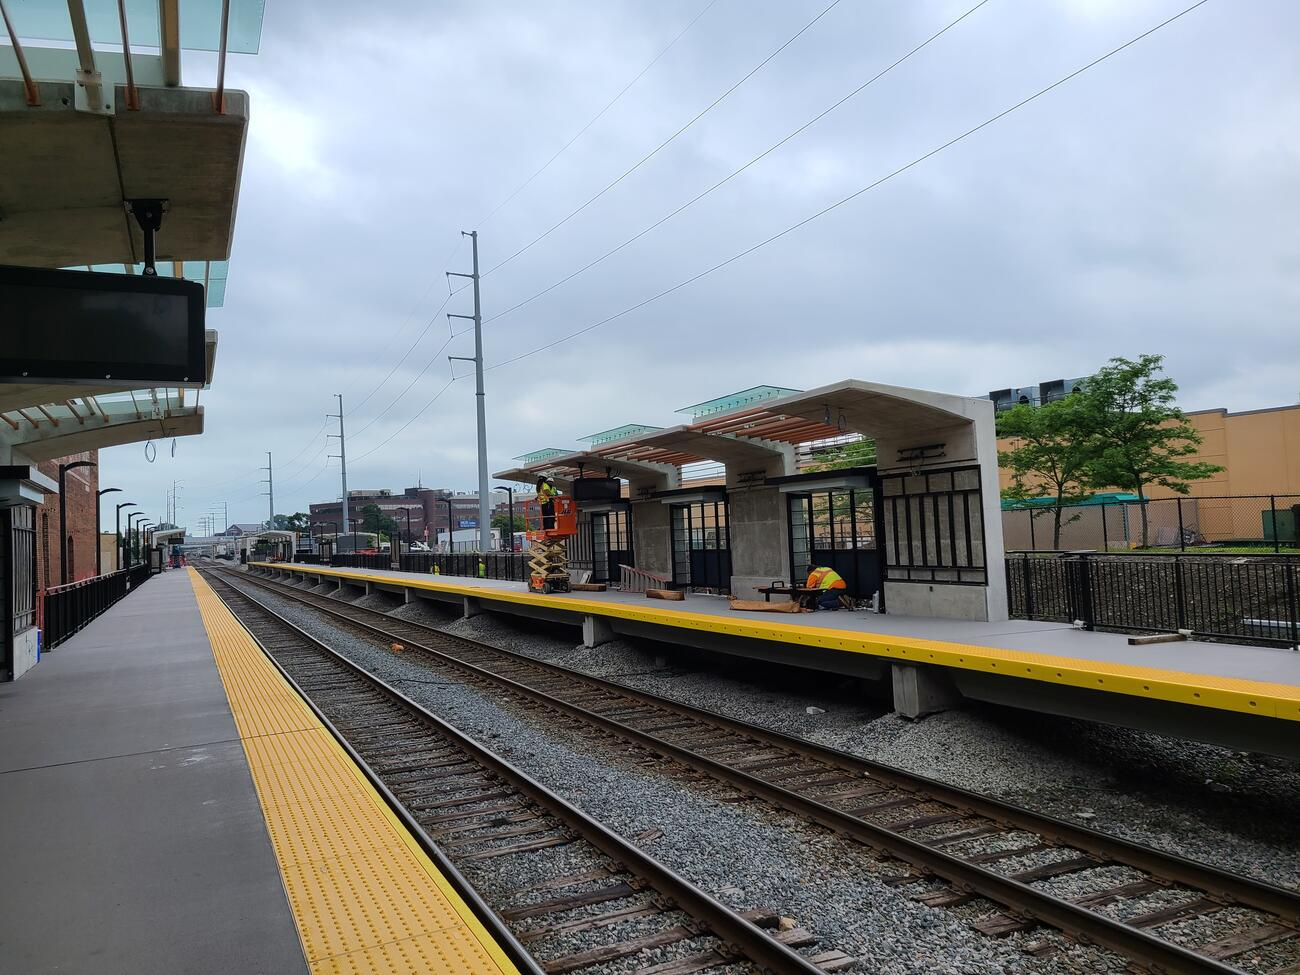 Crews install benches and wire lighting for the new Chelsea Commuter Rail Station outbound platform.